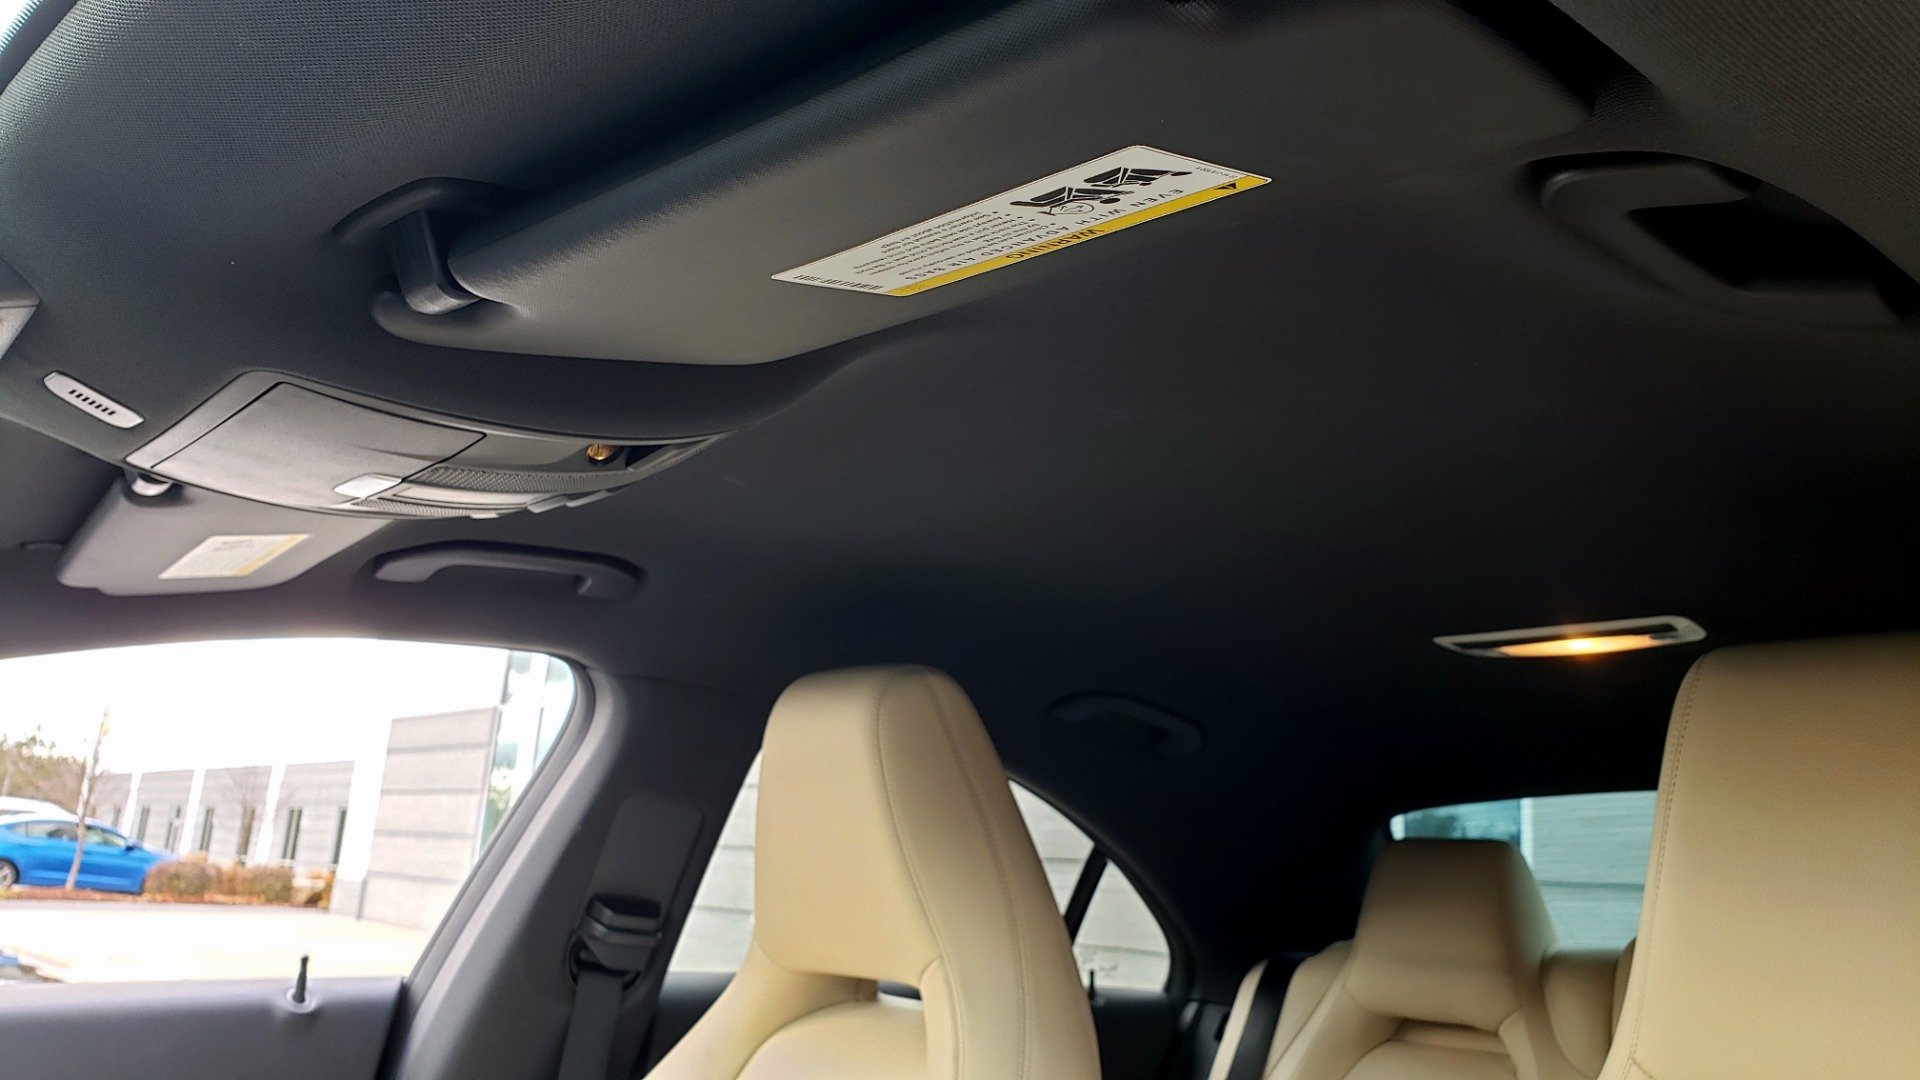 Used 2018 Mercedes-Benz CLA 250 / HEATED SEATS / BSA / APPLE CARPLAY / ANDROID AUTO / 18IN WHEEL for sale $24,195 at Formula Imports in Charlotte NC 28227 24